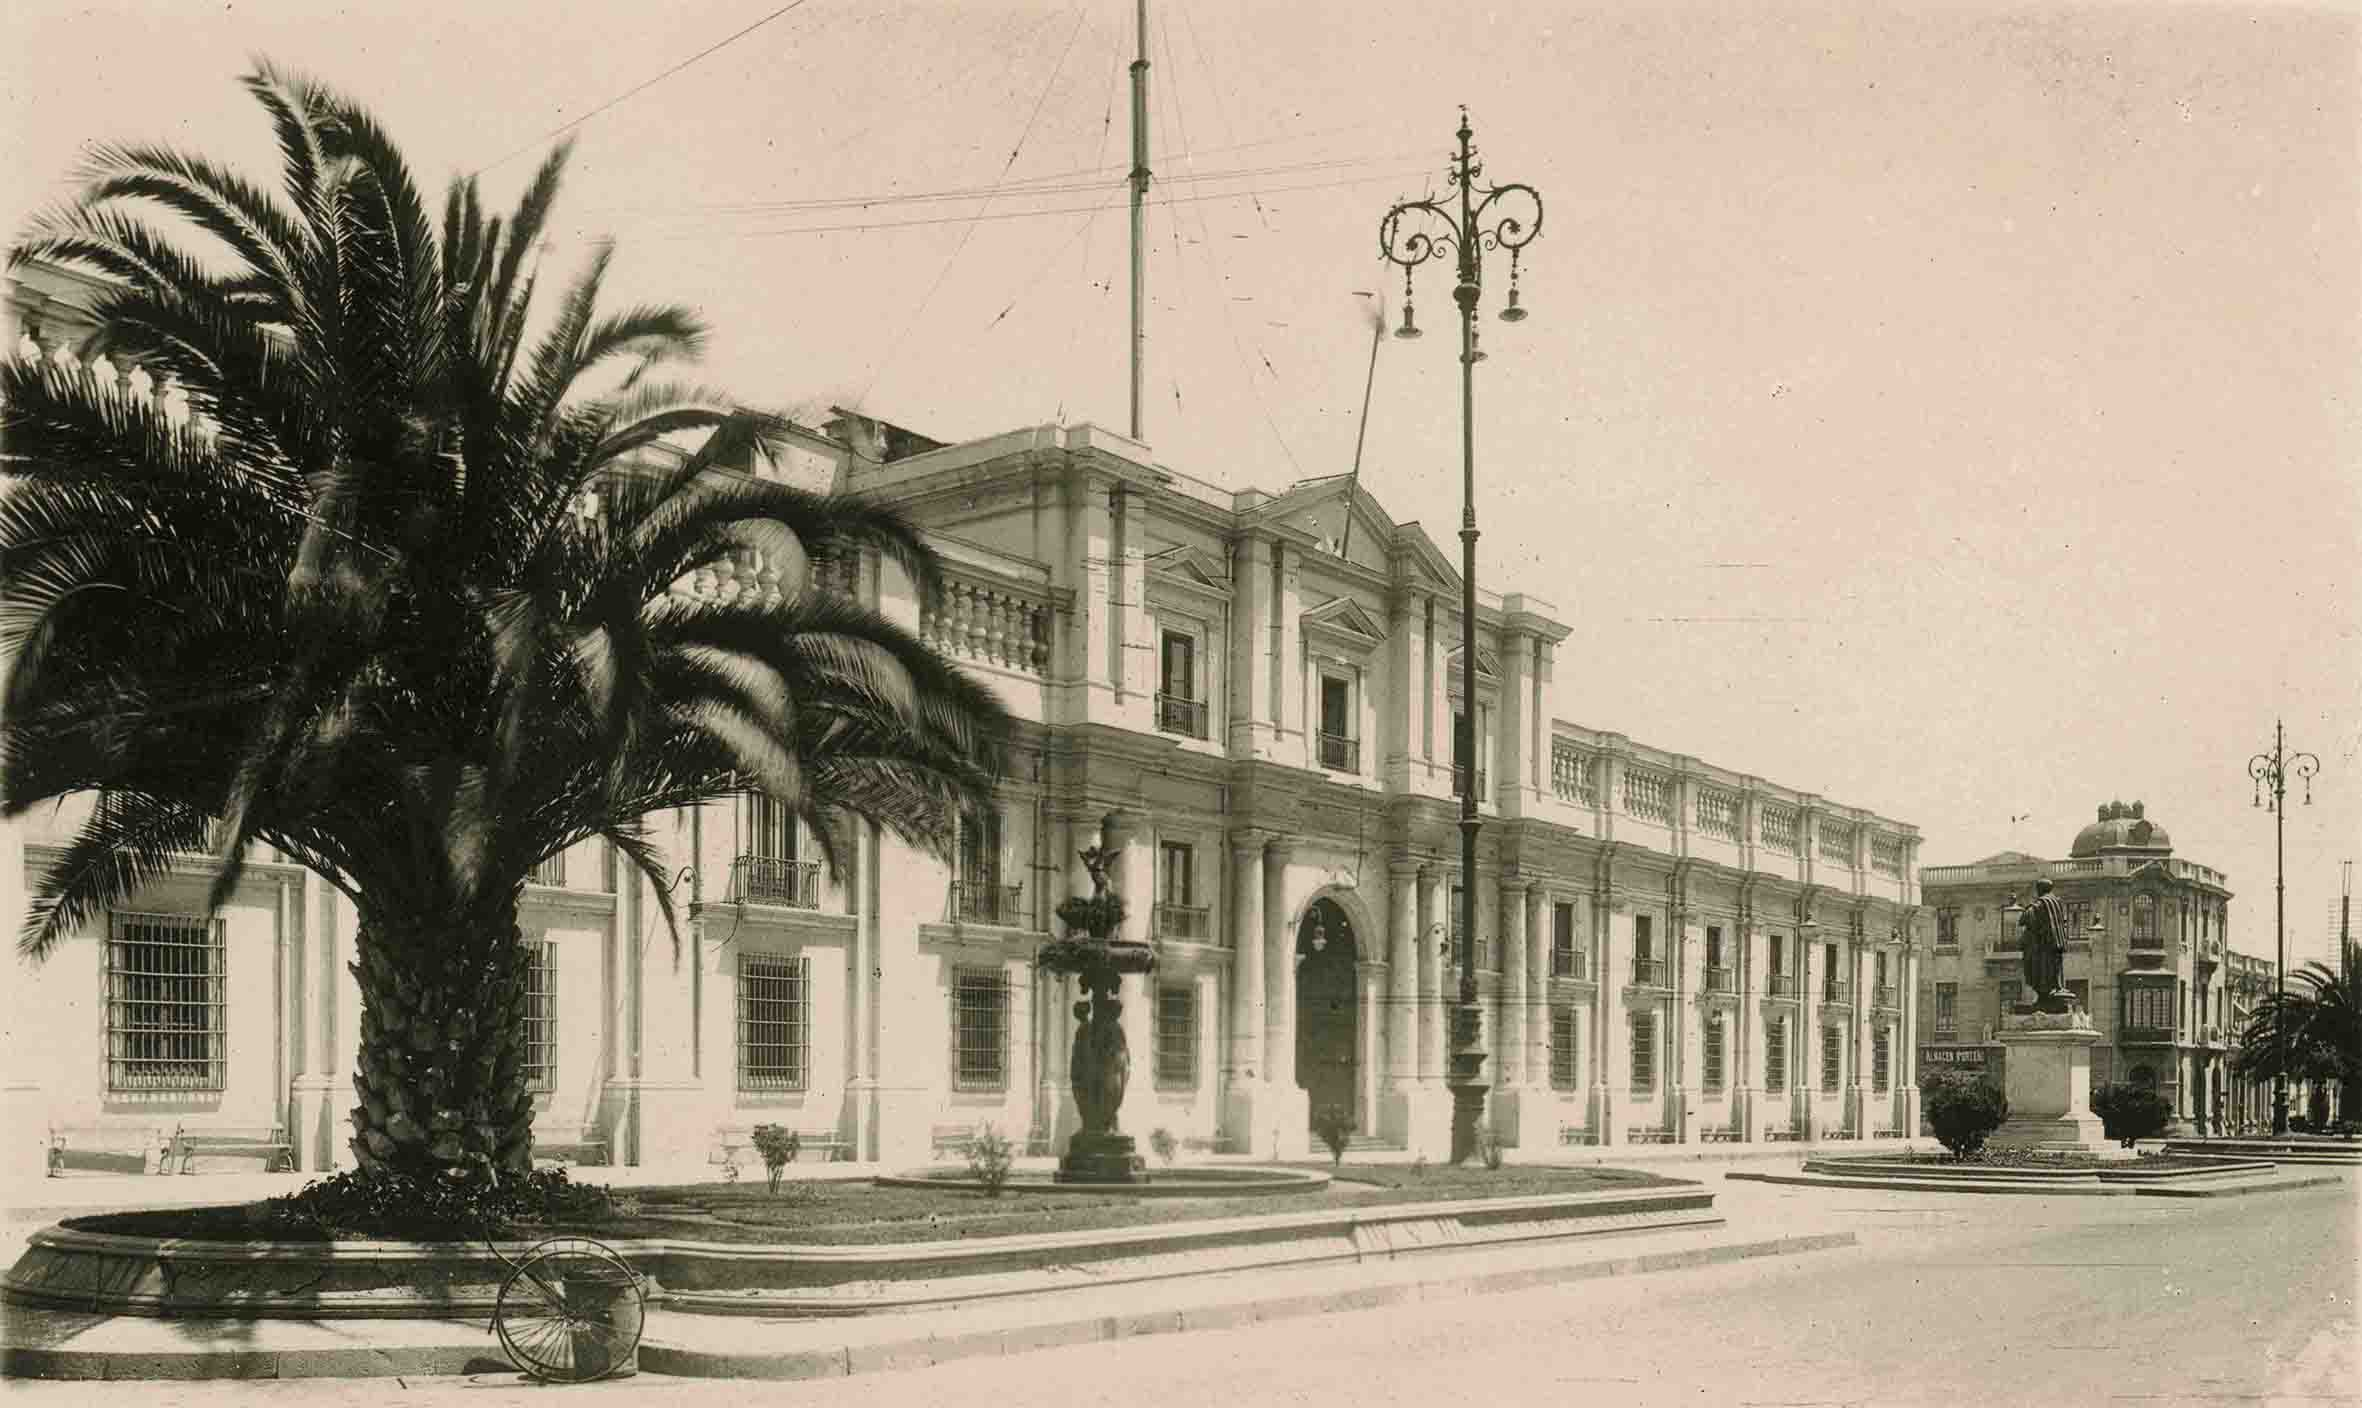 Enterreno - Fotos históricas de chile - fotos antiguas de Chile - Palacio de La Moneda ca. 1925